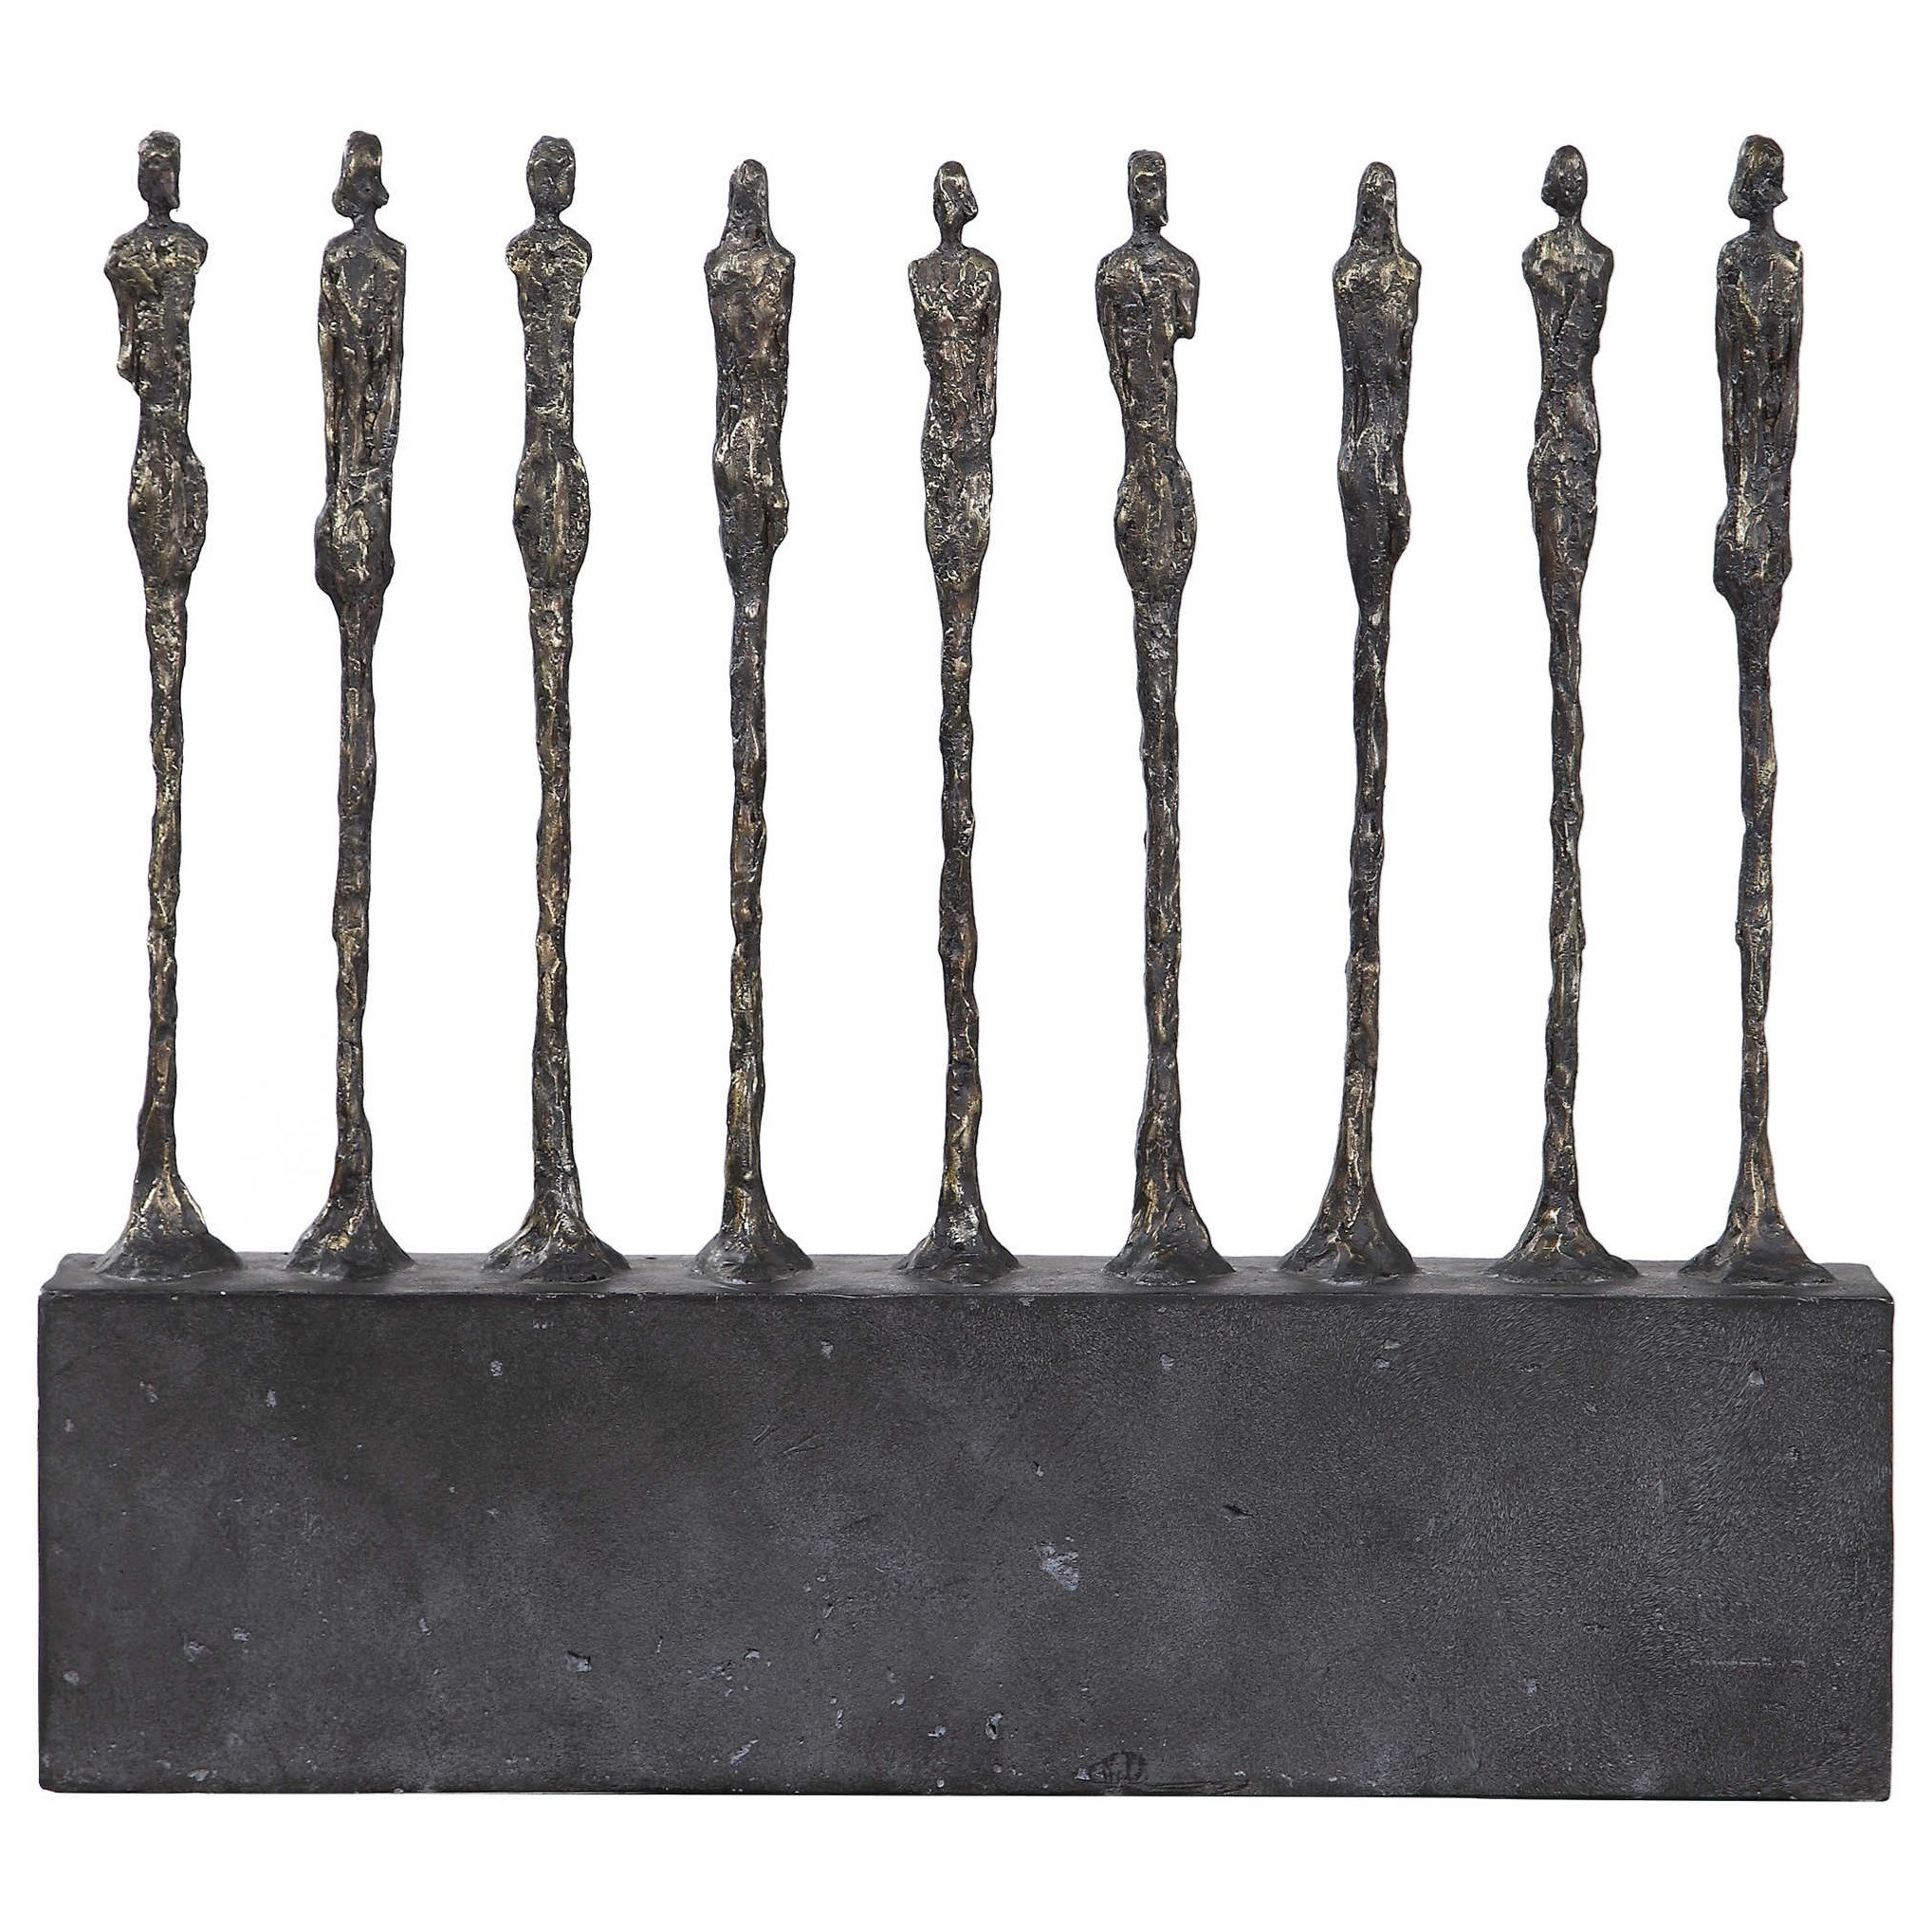 Accessories - Statues and Figurines Stand Together Aged Gold Figurine by Uttermost at Suburban Furniture